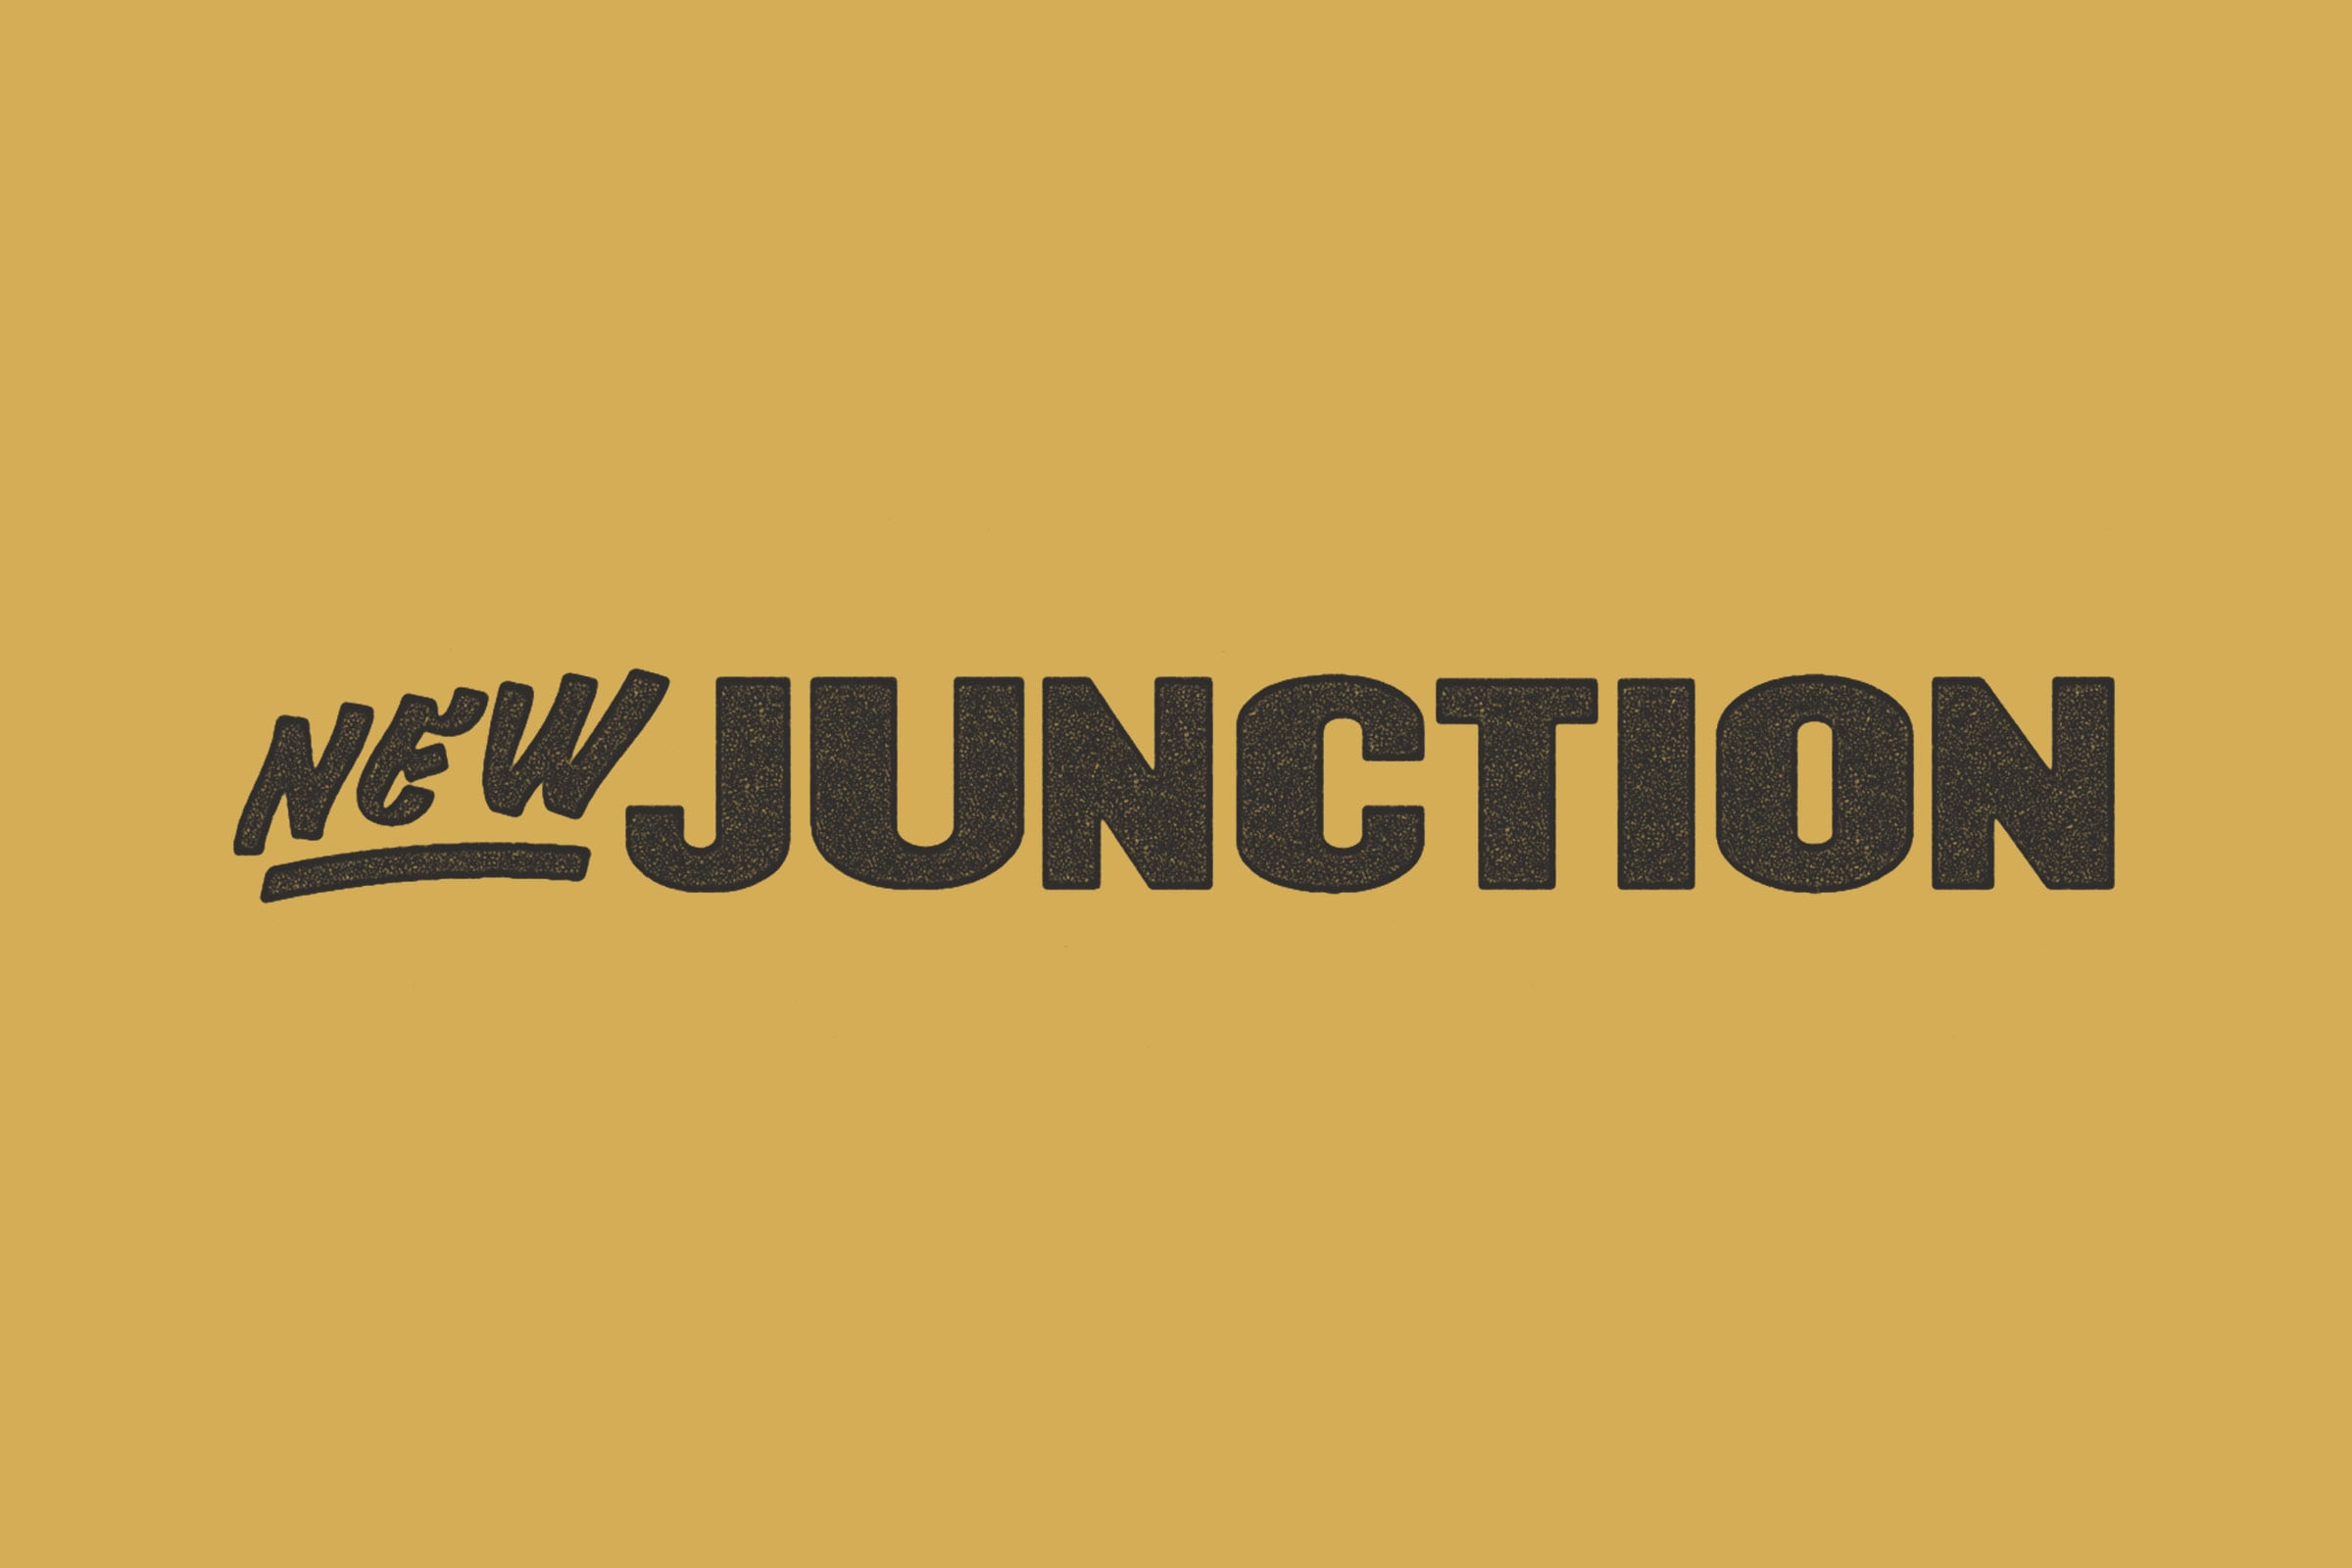 BLO999063_NEW_JUNCTION_IMGS3.jpg